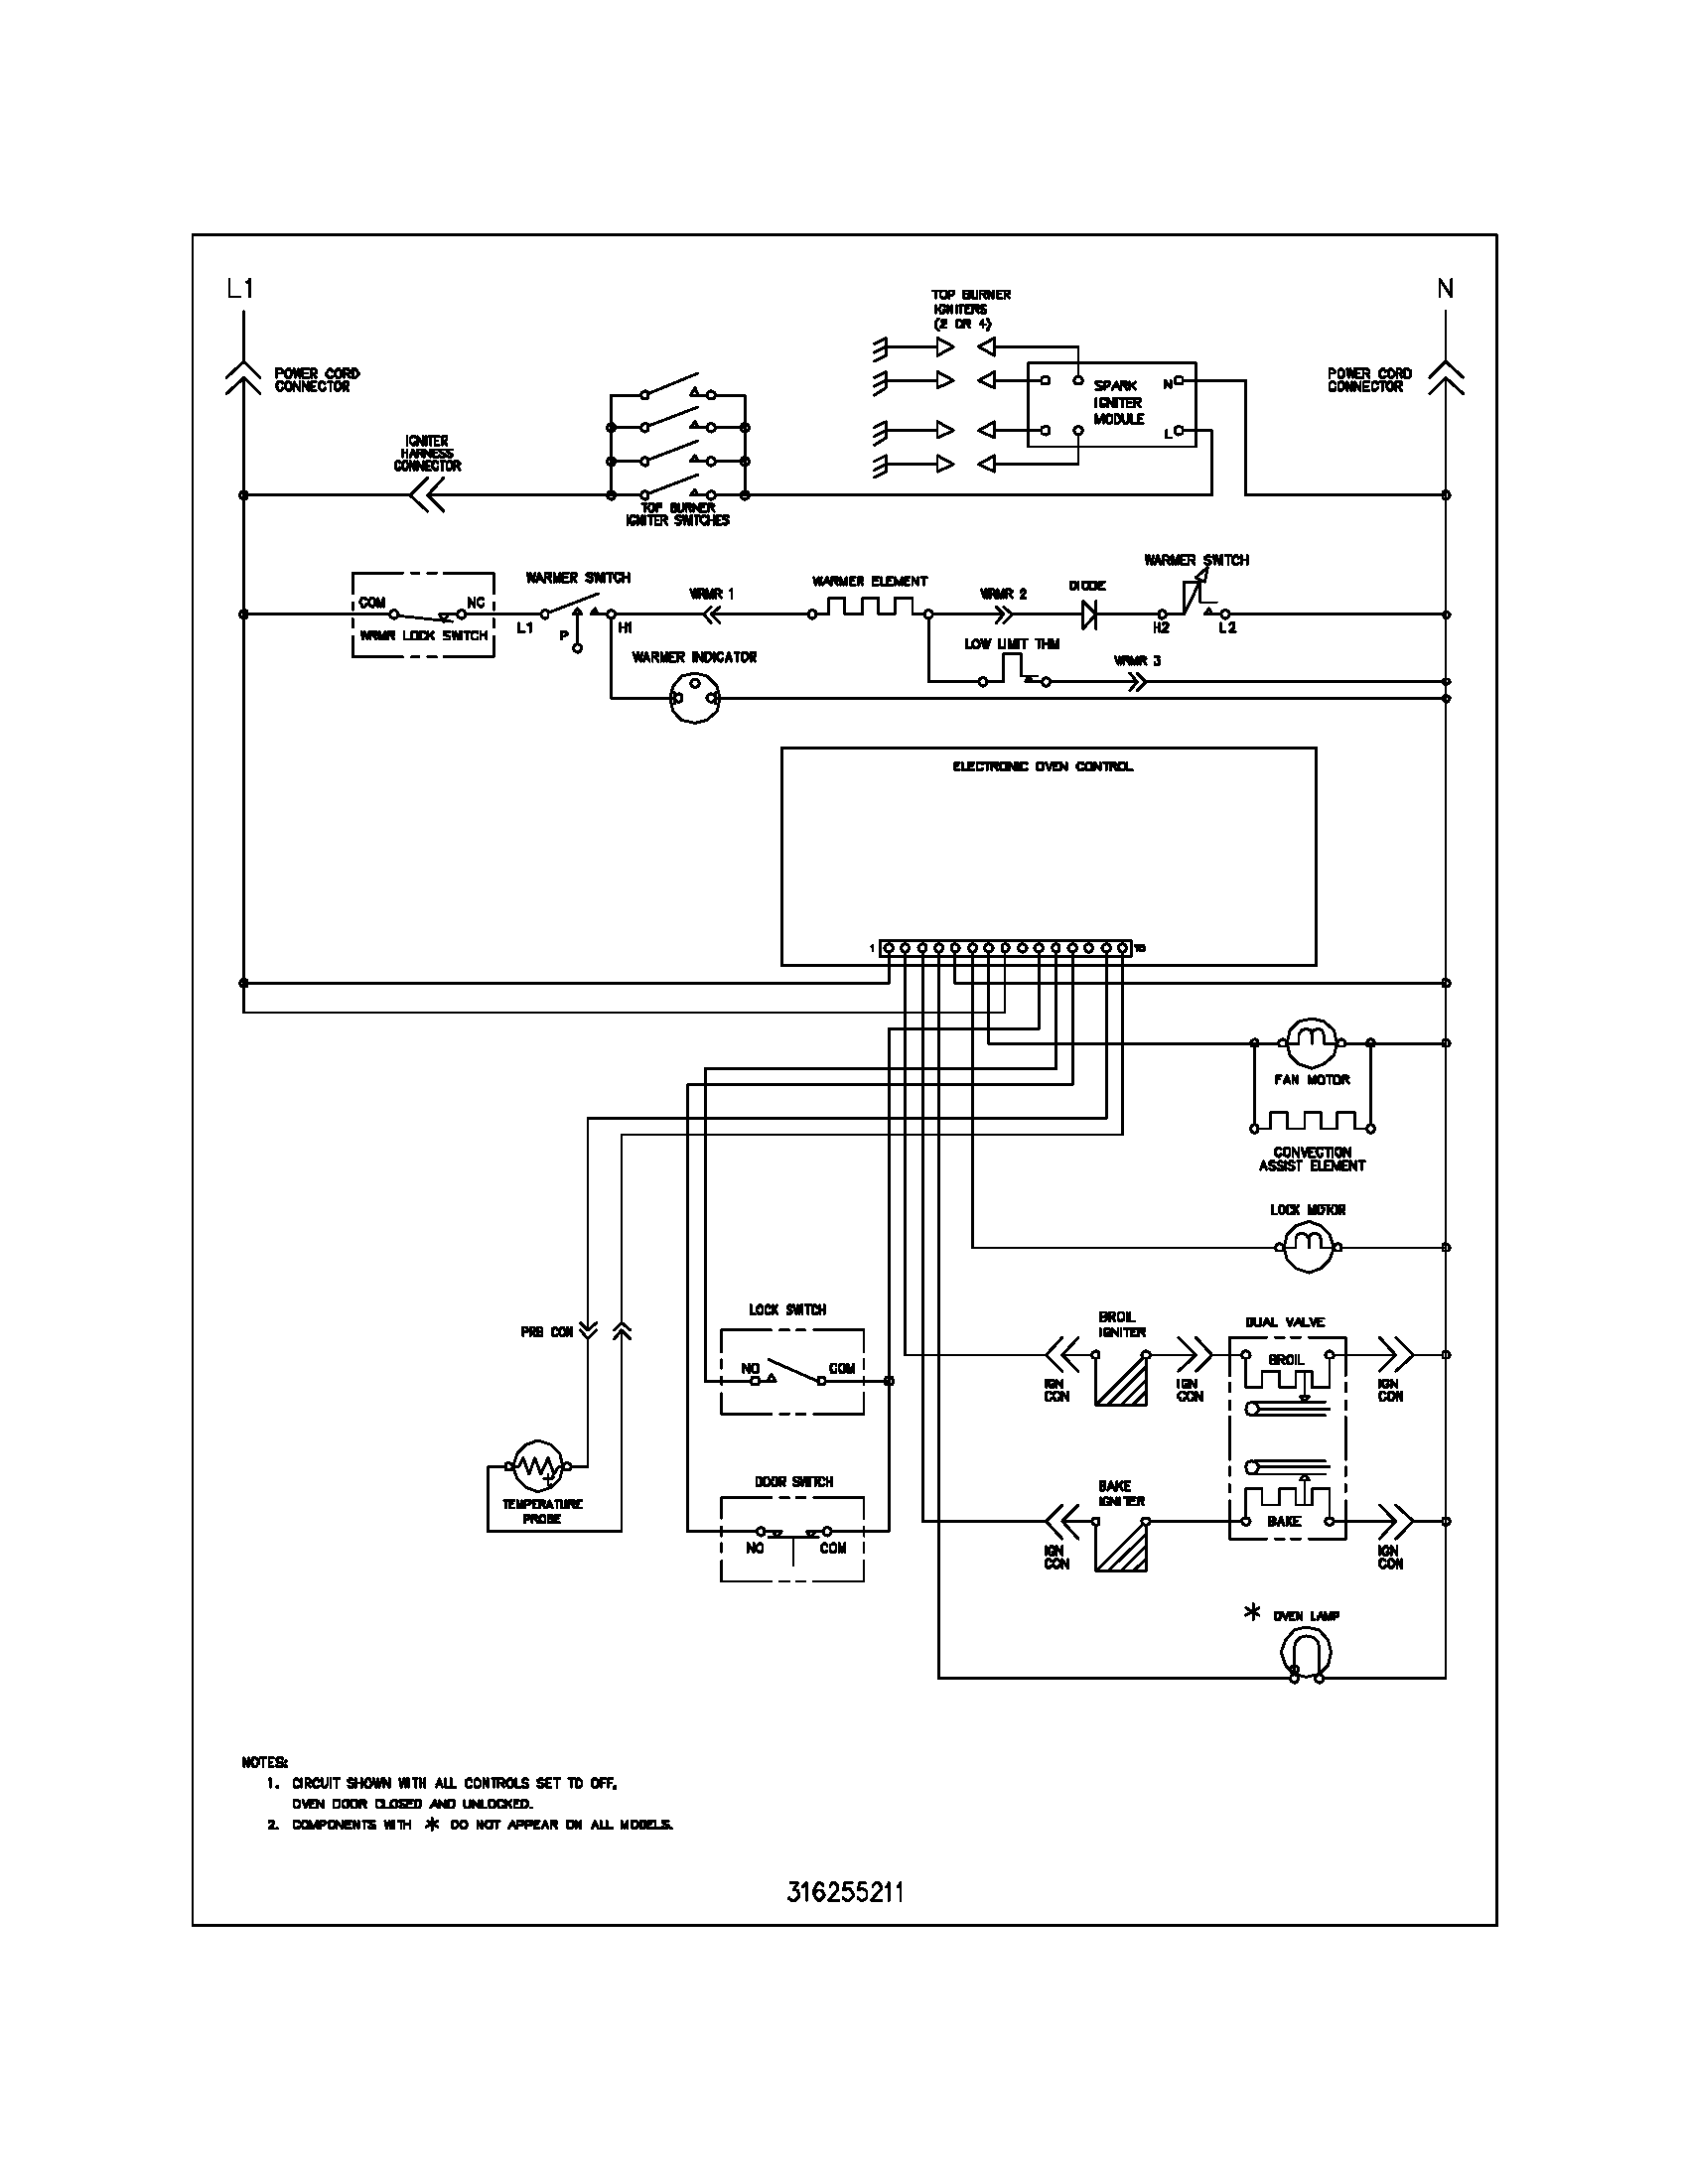 frigidaire plgf389ccc gas range timer stove clocks and appliance rh appliancetimers ca Frigidaire Refrigerator Schematics Wiring Diagram for Frigidaire Fridge